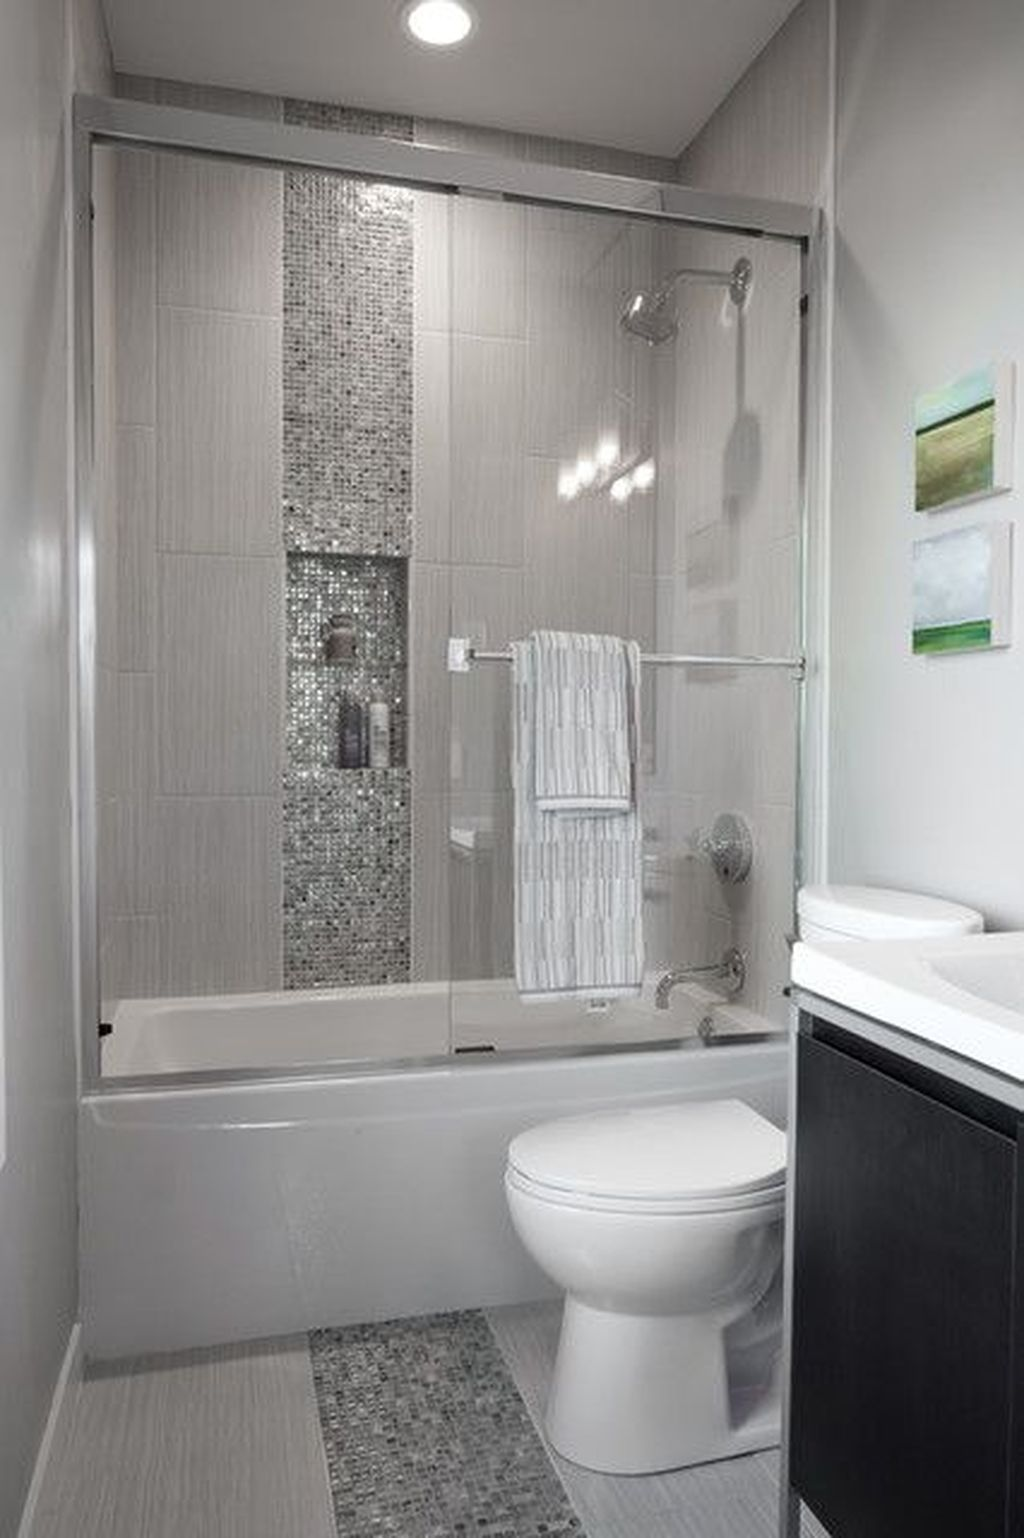 Bon 40 The Best Small Bathroom Design Ideas To Make It Look Larger